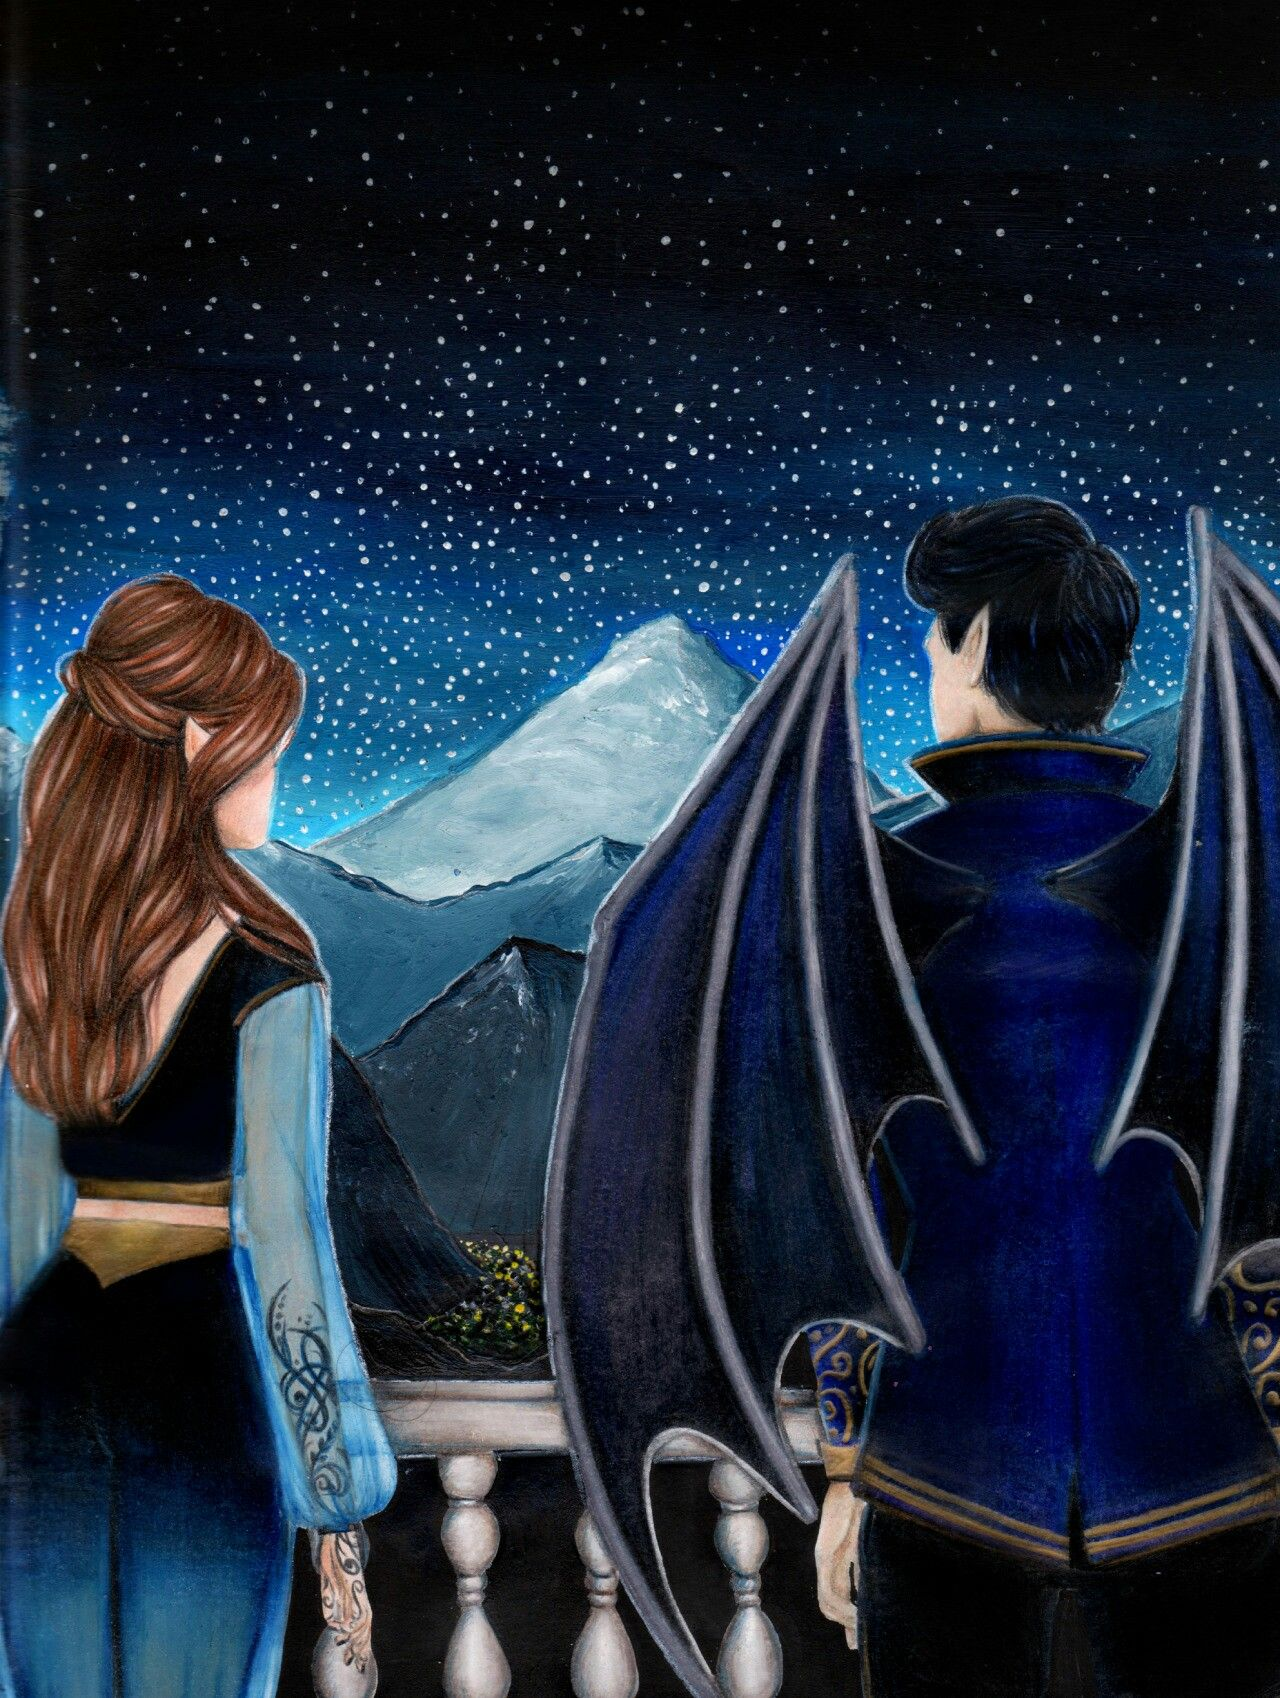 Rhys And Feyre A Court Of Mist And Fury A Court Of Wings And